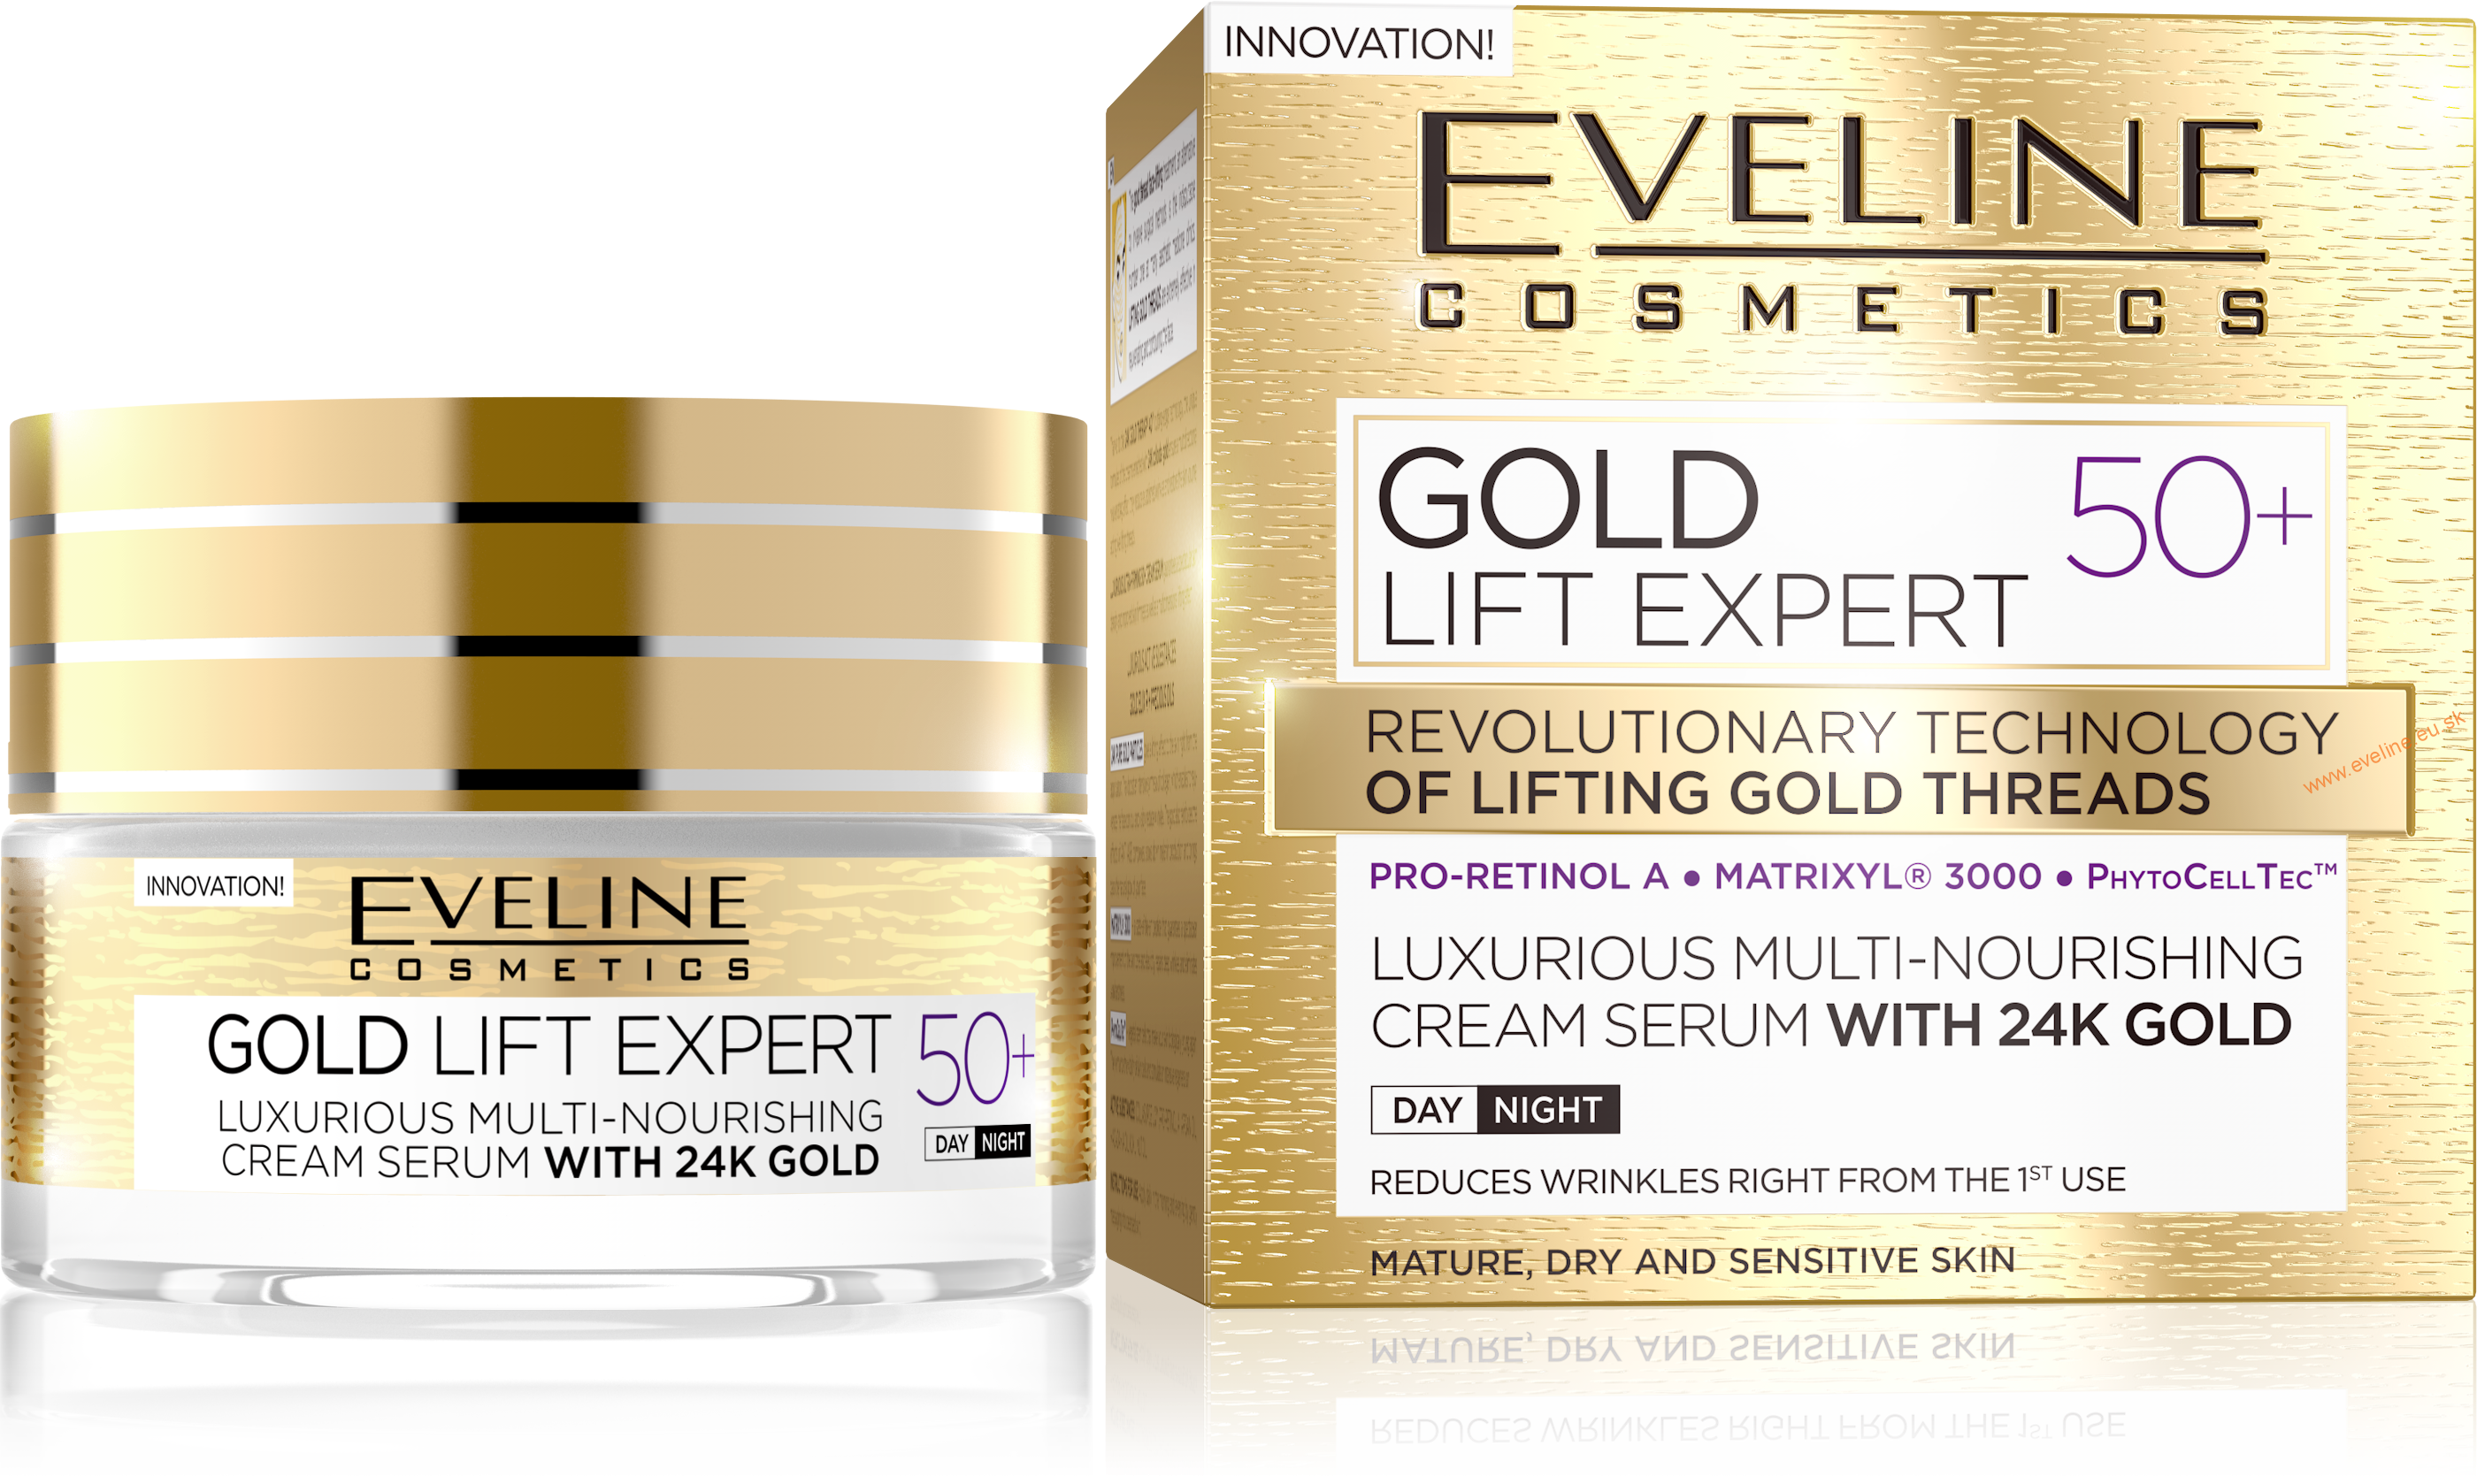 EVELINE Gold Lift Expert 50+